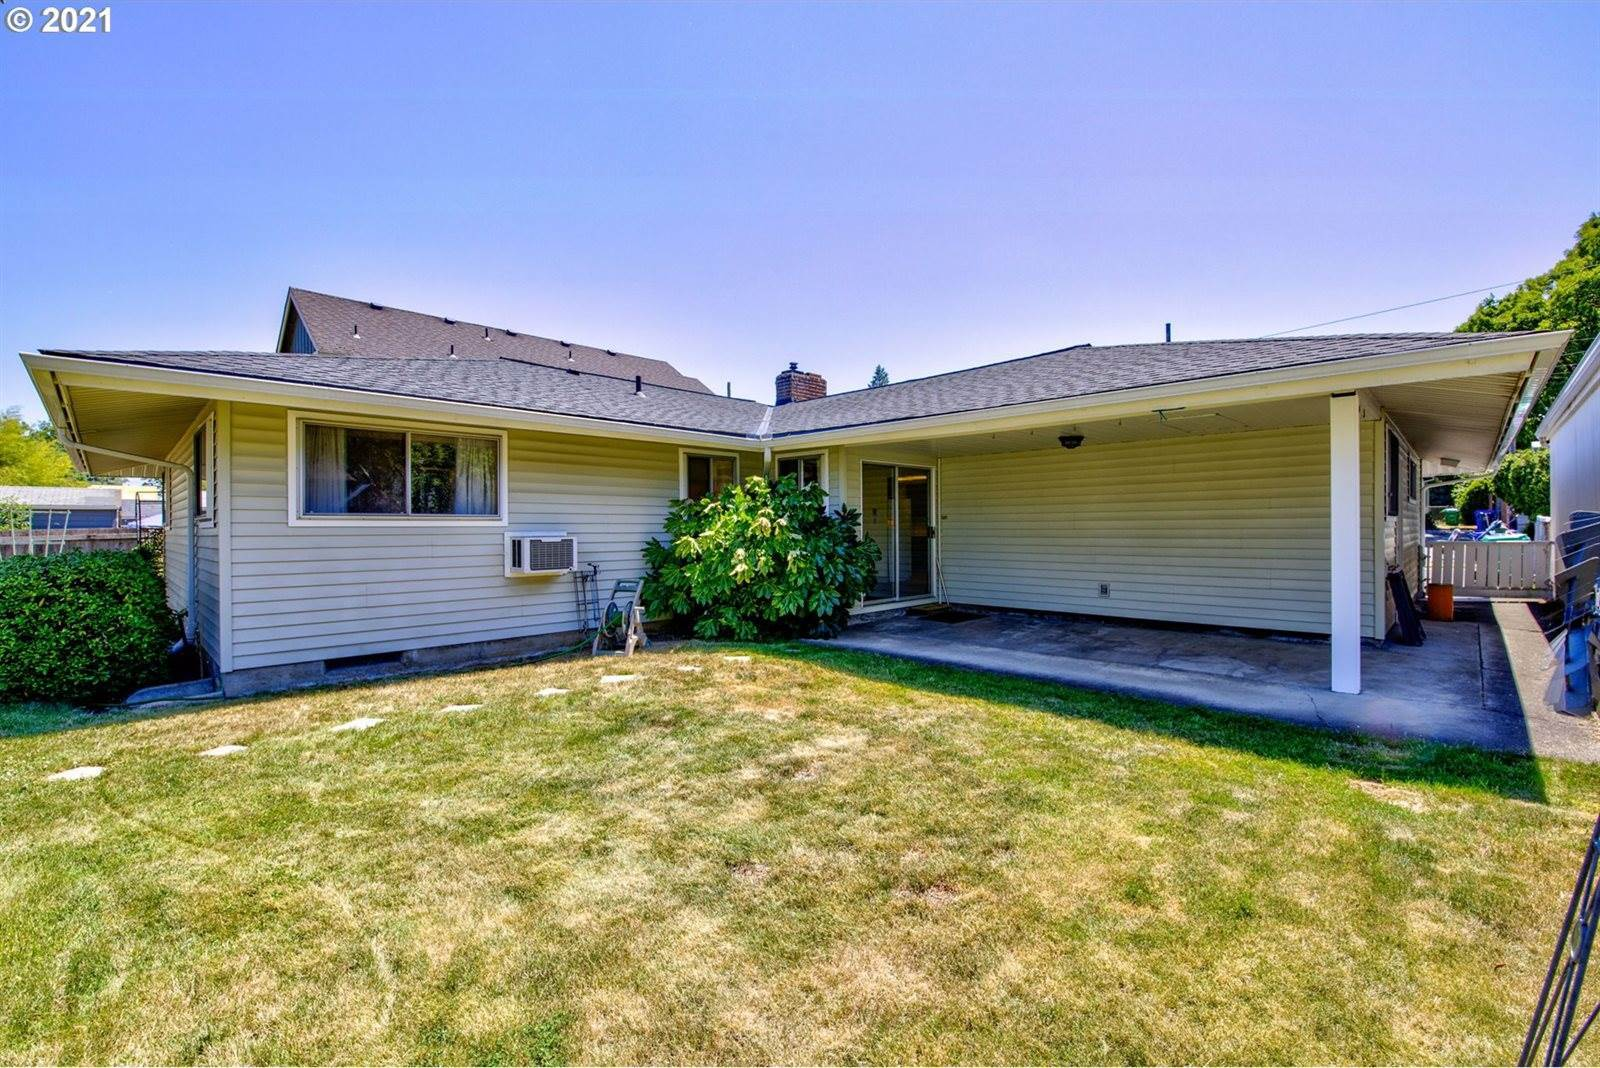 3165 North Terry St, Portland, OR 97217